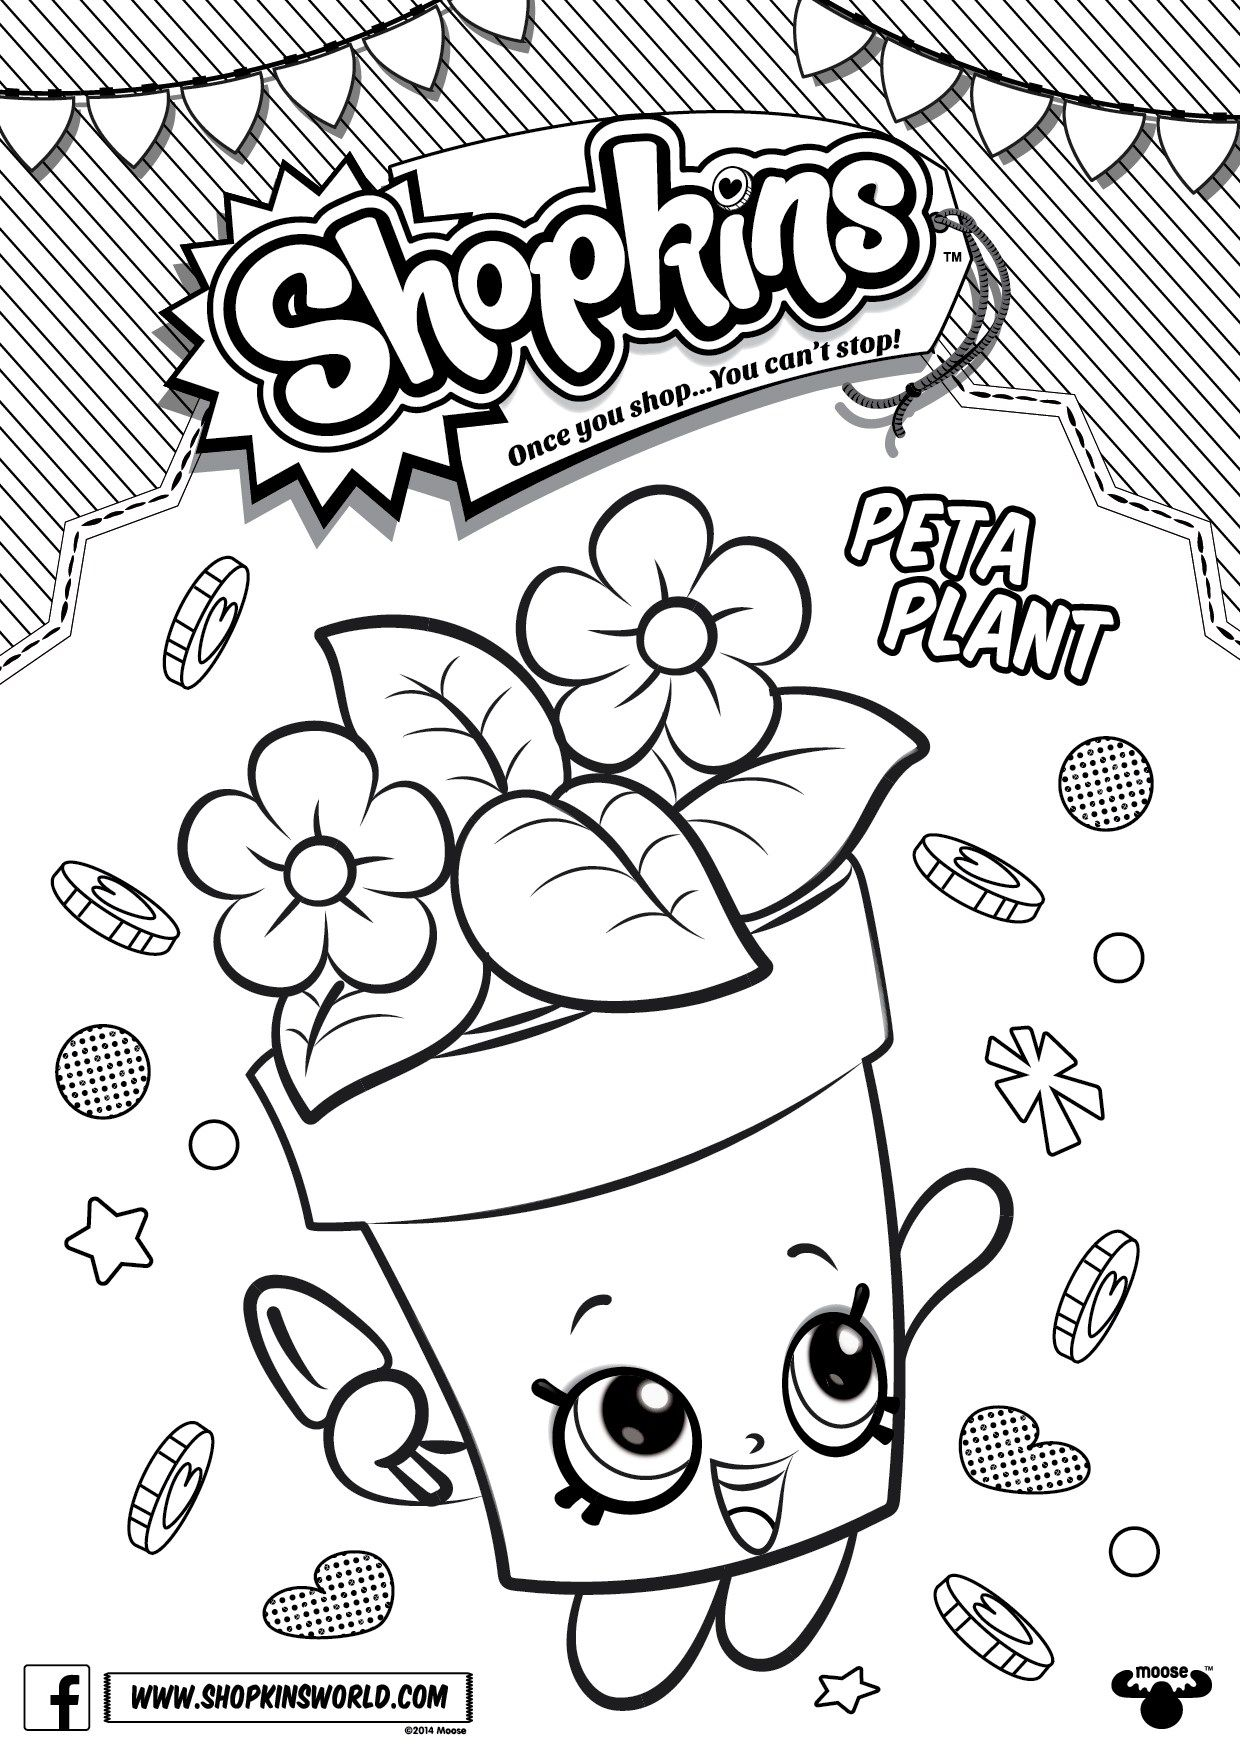 Shopkins Coloring Pages Season 4 Peta Plant Shopkins Colouring